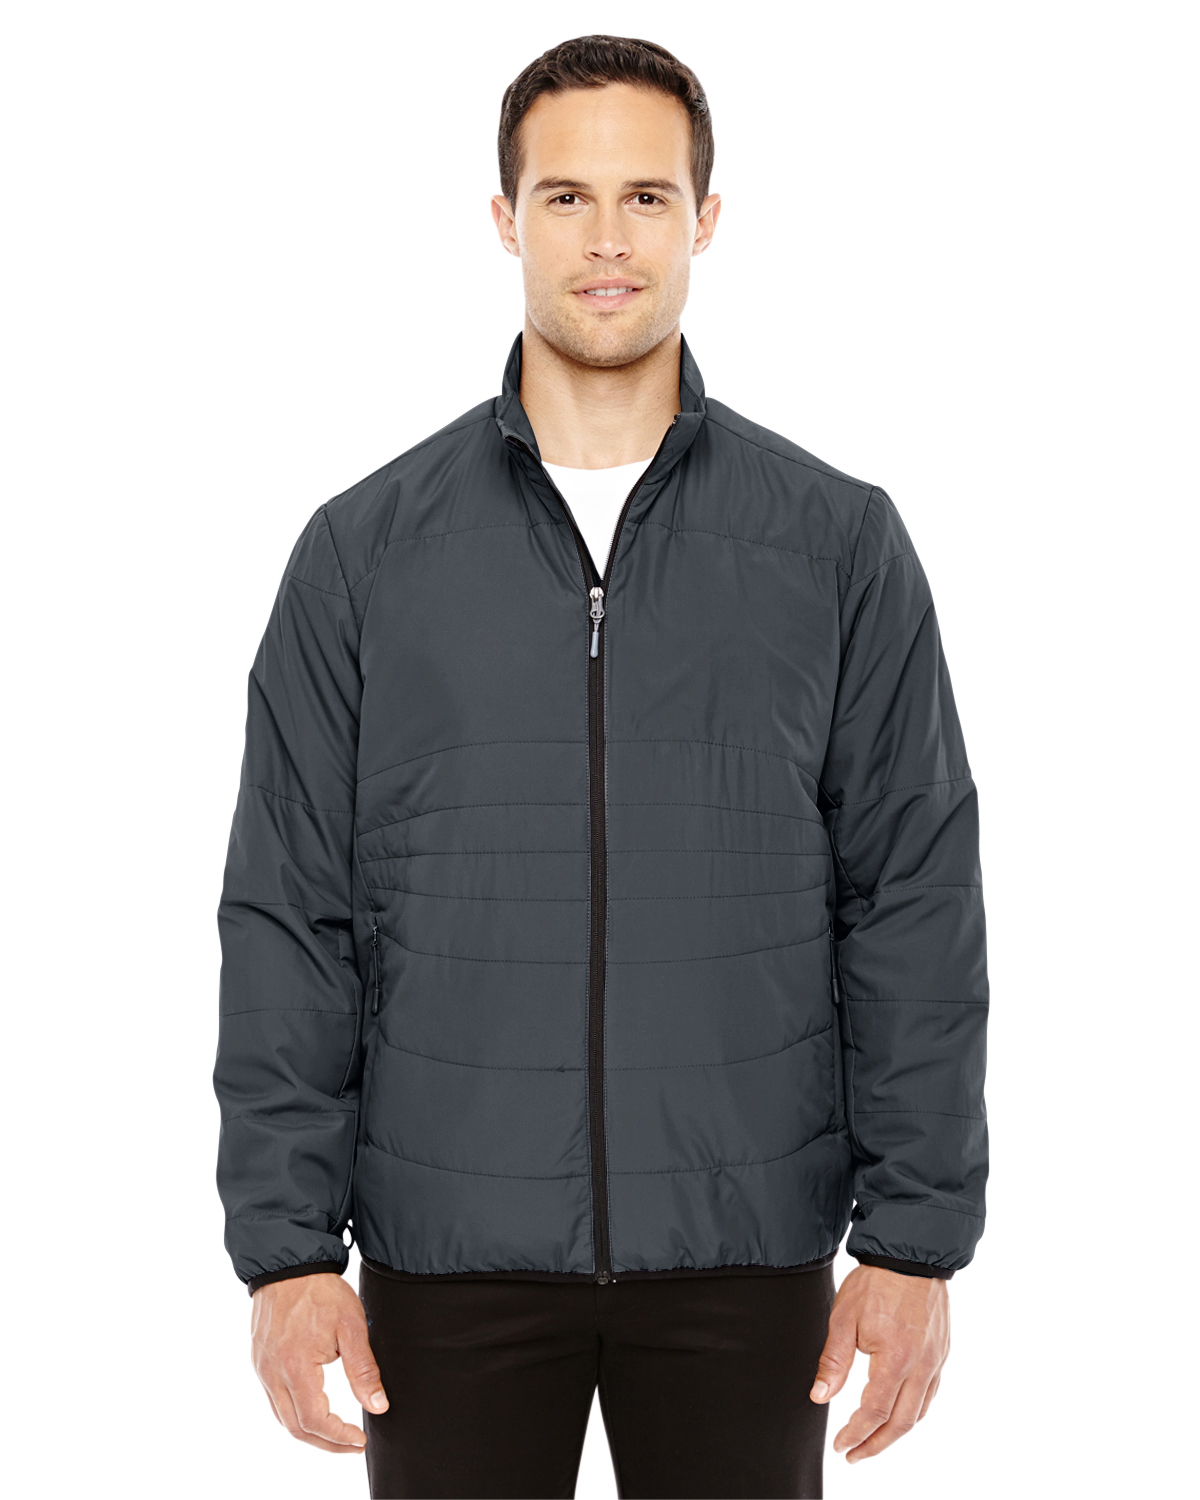 Ash City - North End 88231 - Men's Resolve Interactive Insulated Packable Jacket